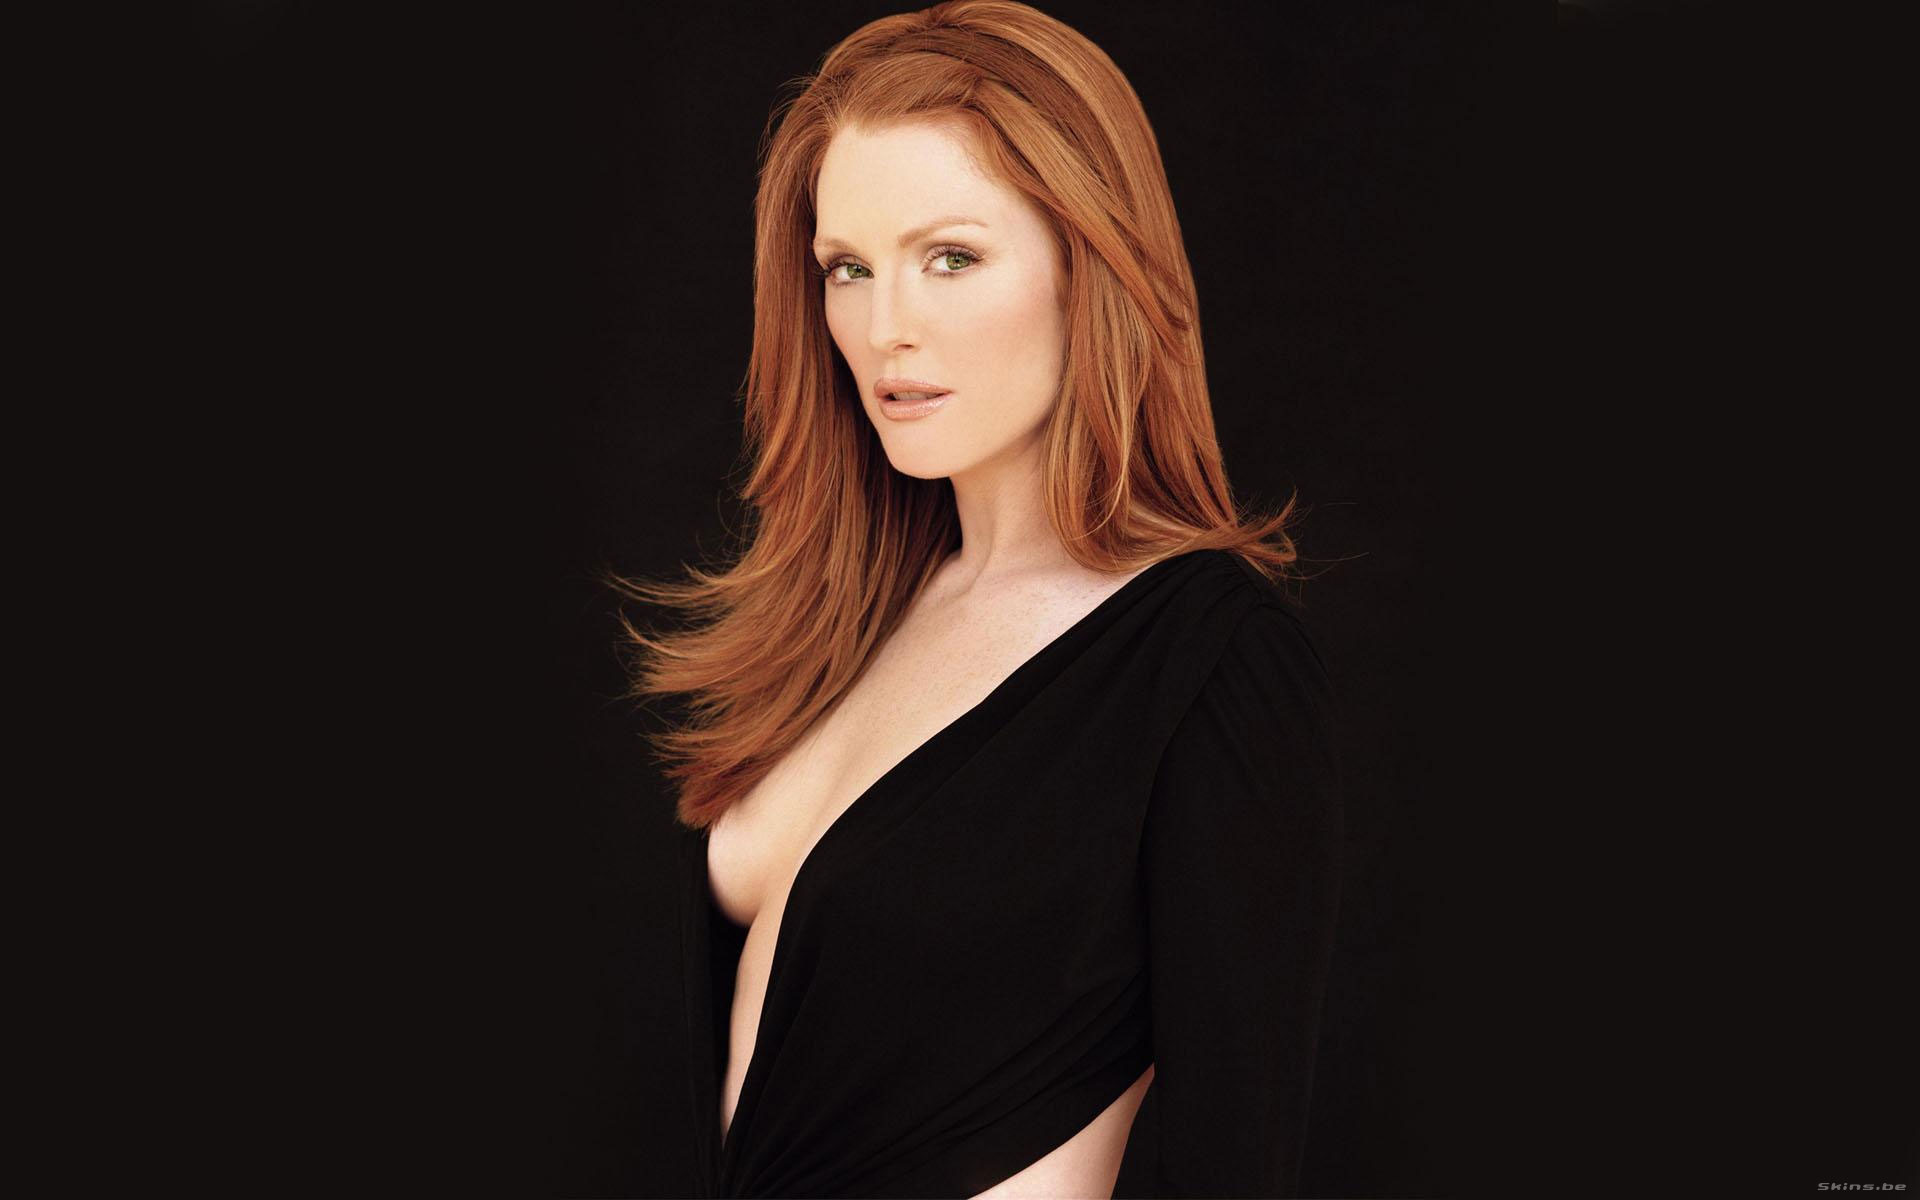 5° Julianne Moore (55 ans)